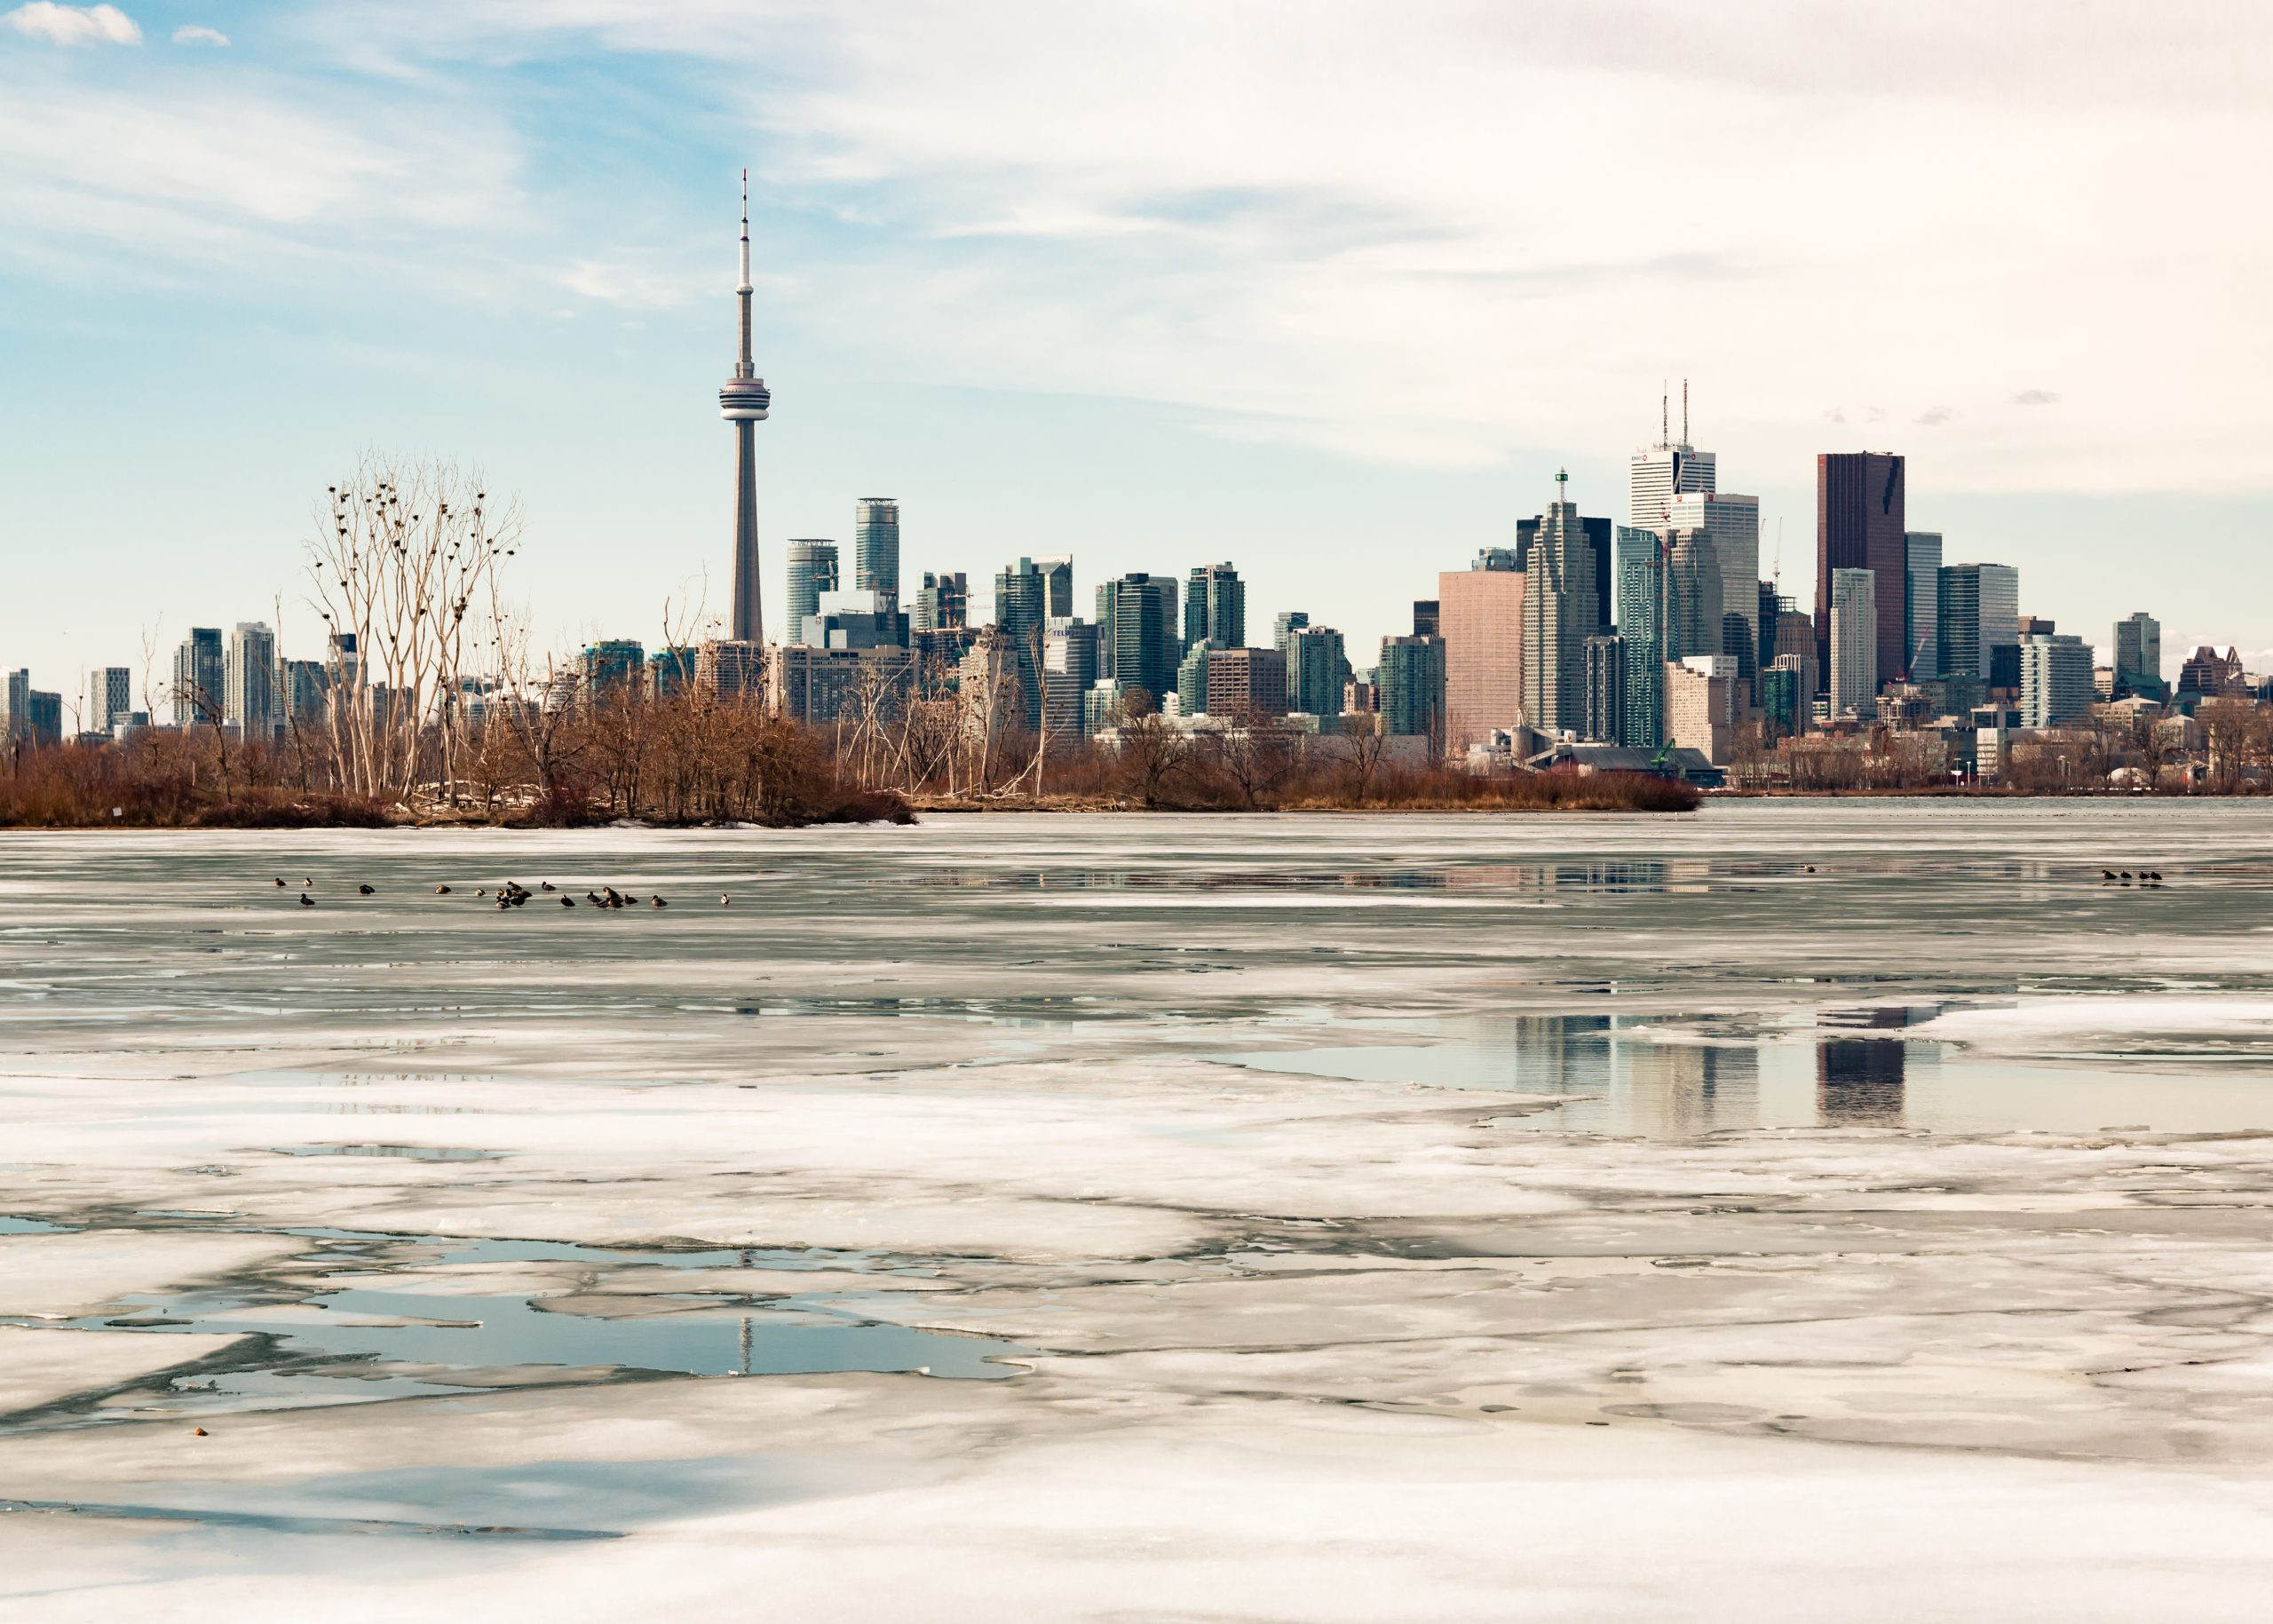 Image shows Toronto city in winter